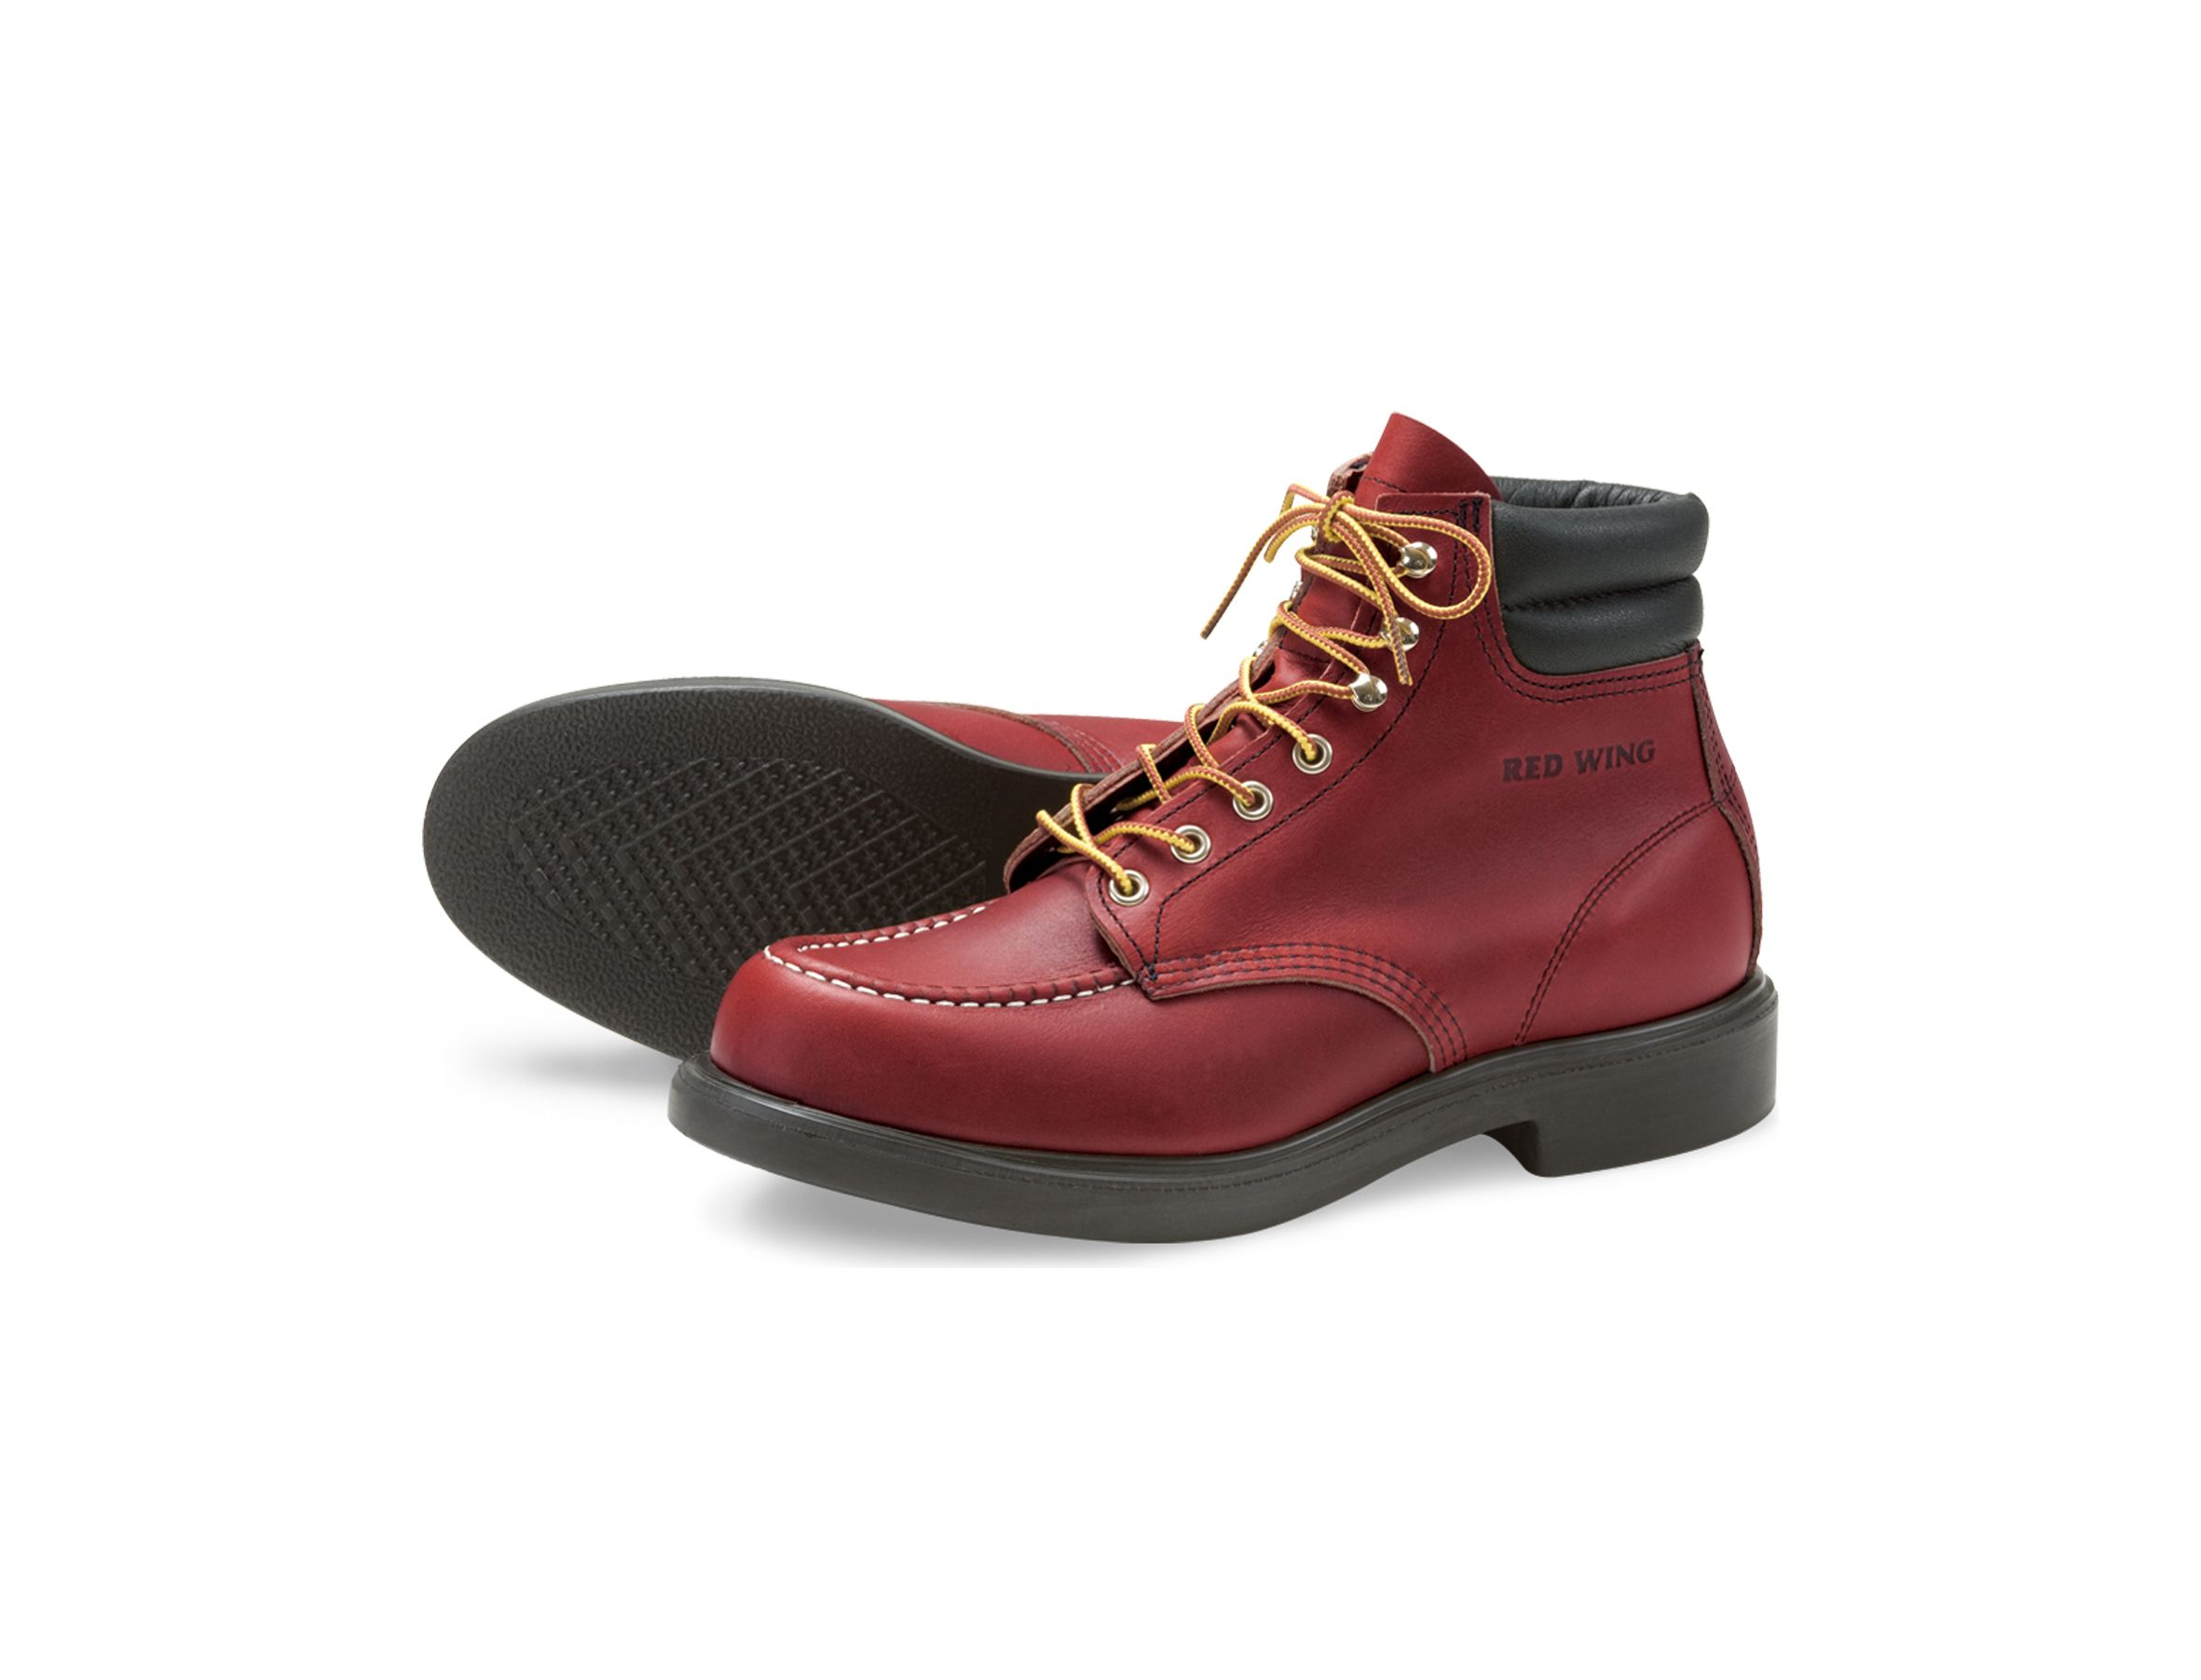 Red Wing Usa Shoes